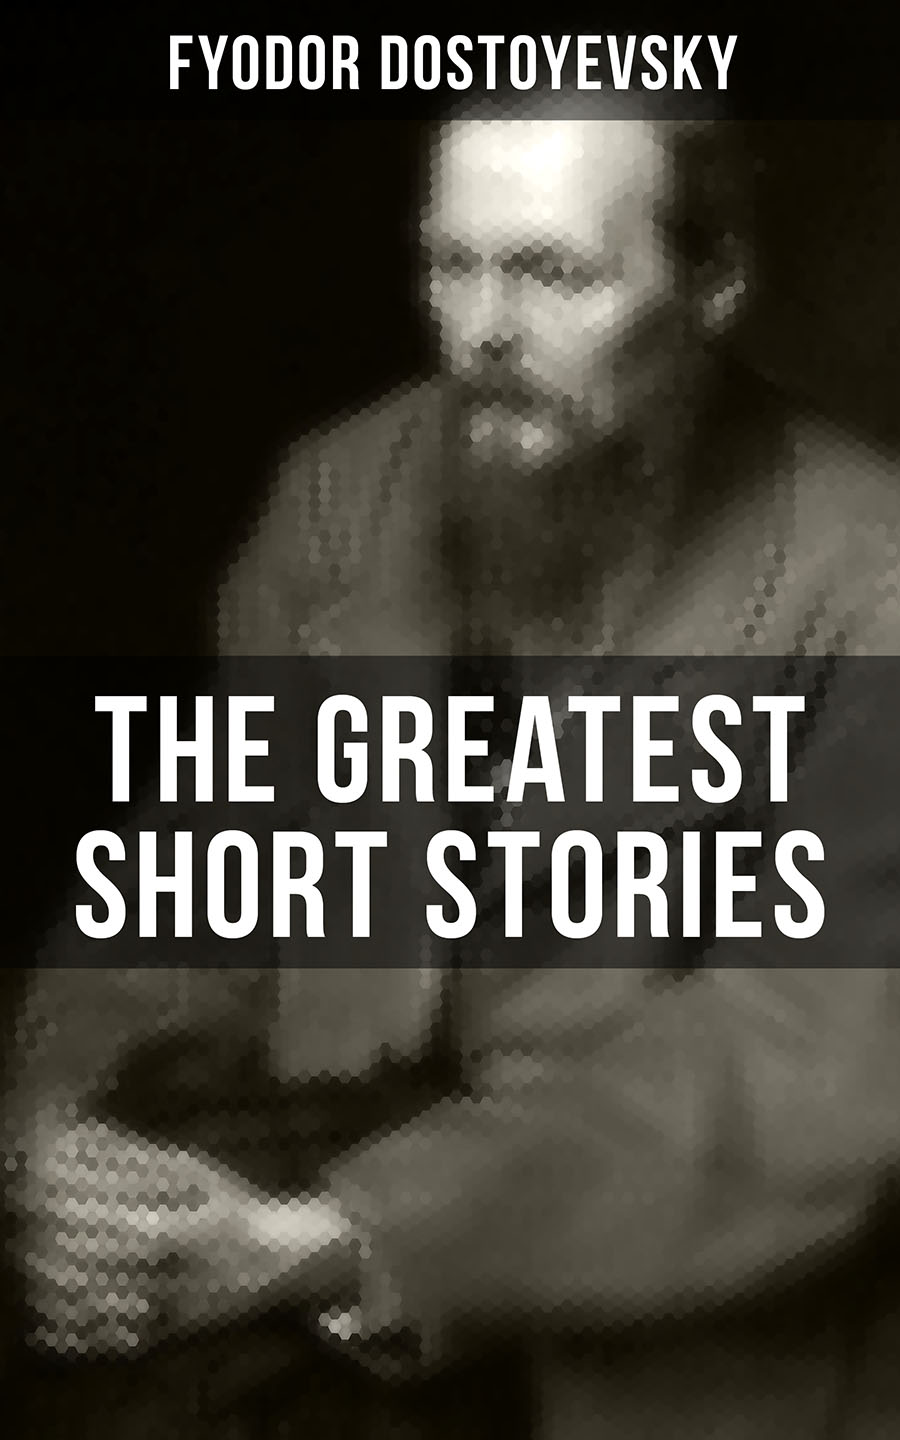 Fyodor Dostoyevsky The Greatest Short Stories of Dostoyevsky dostoyevsky f white nights isbn 978 0 241 25208 6